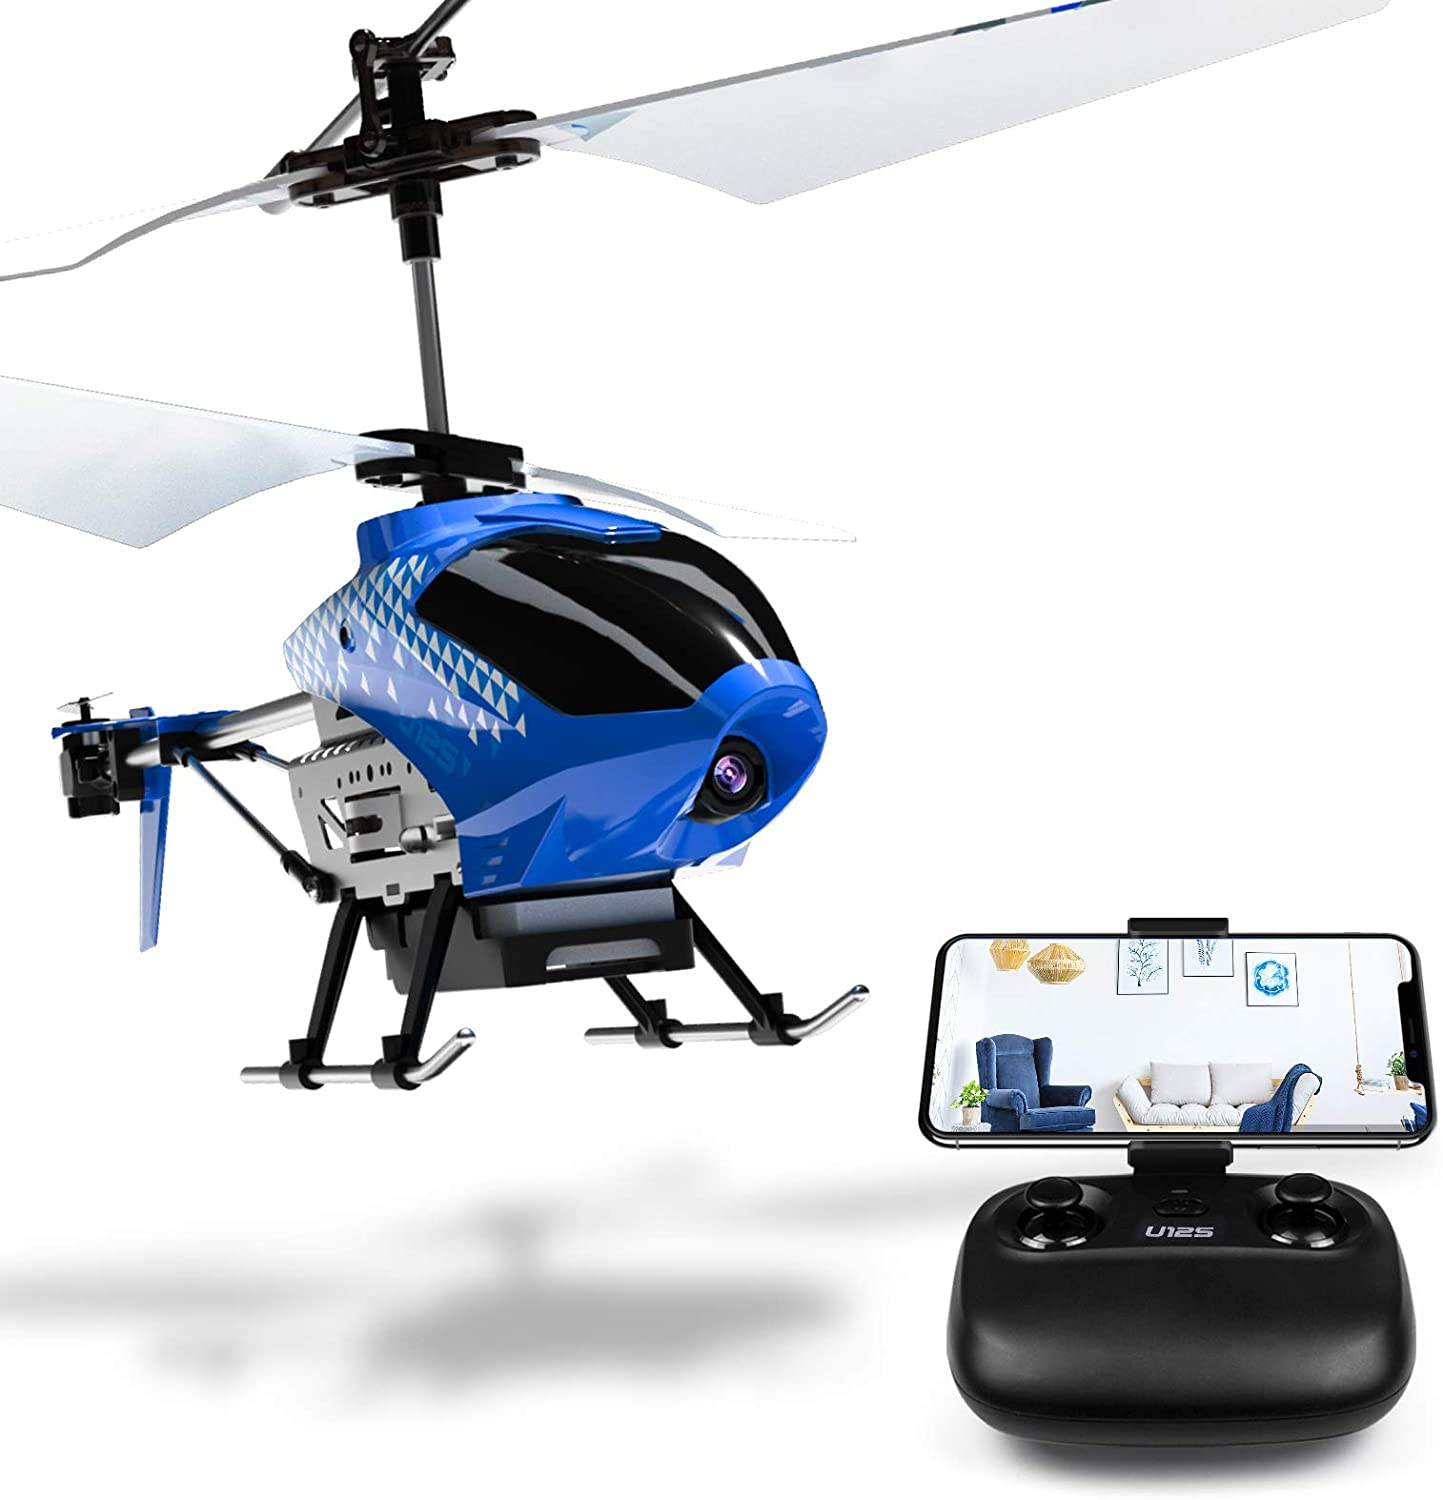 Mini RC Helicopter with Remote Control Helicopter for Kids and Adults